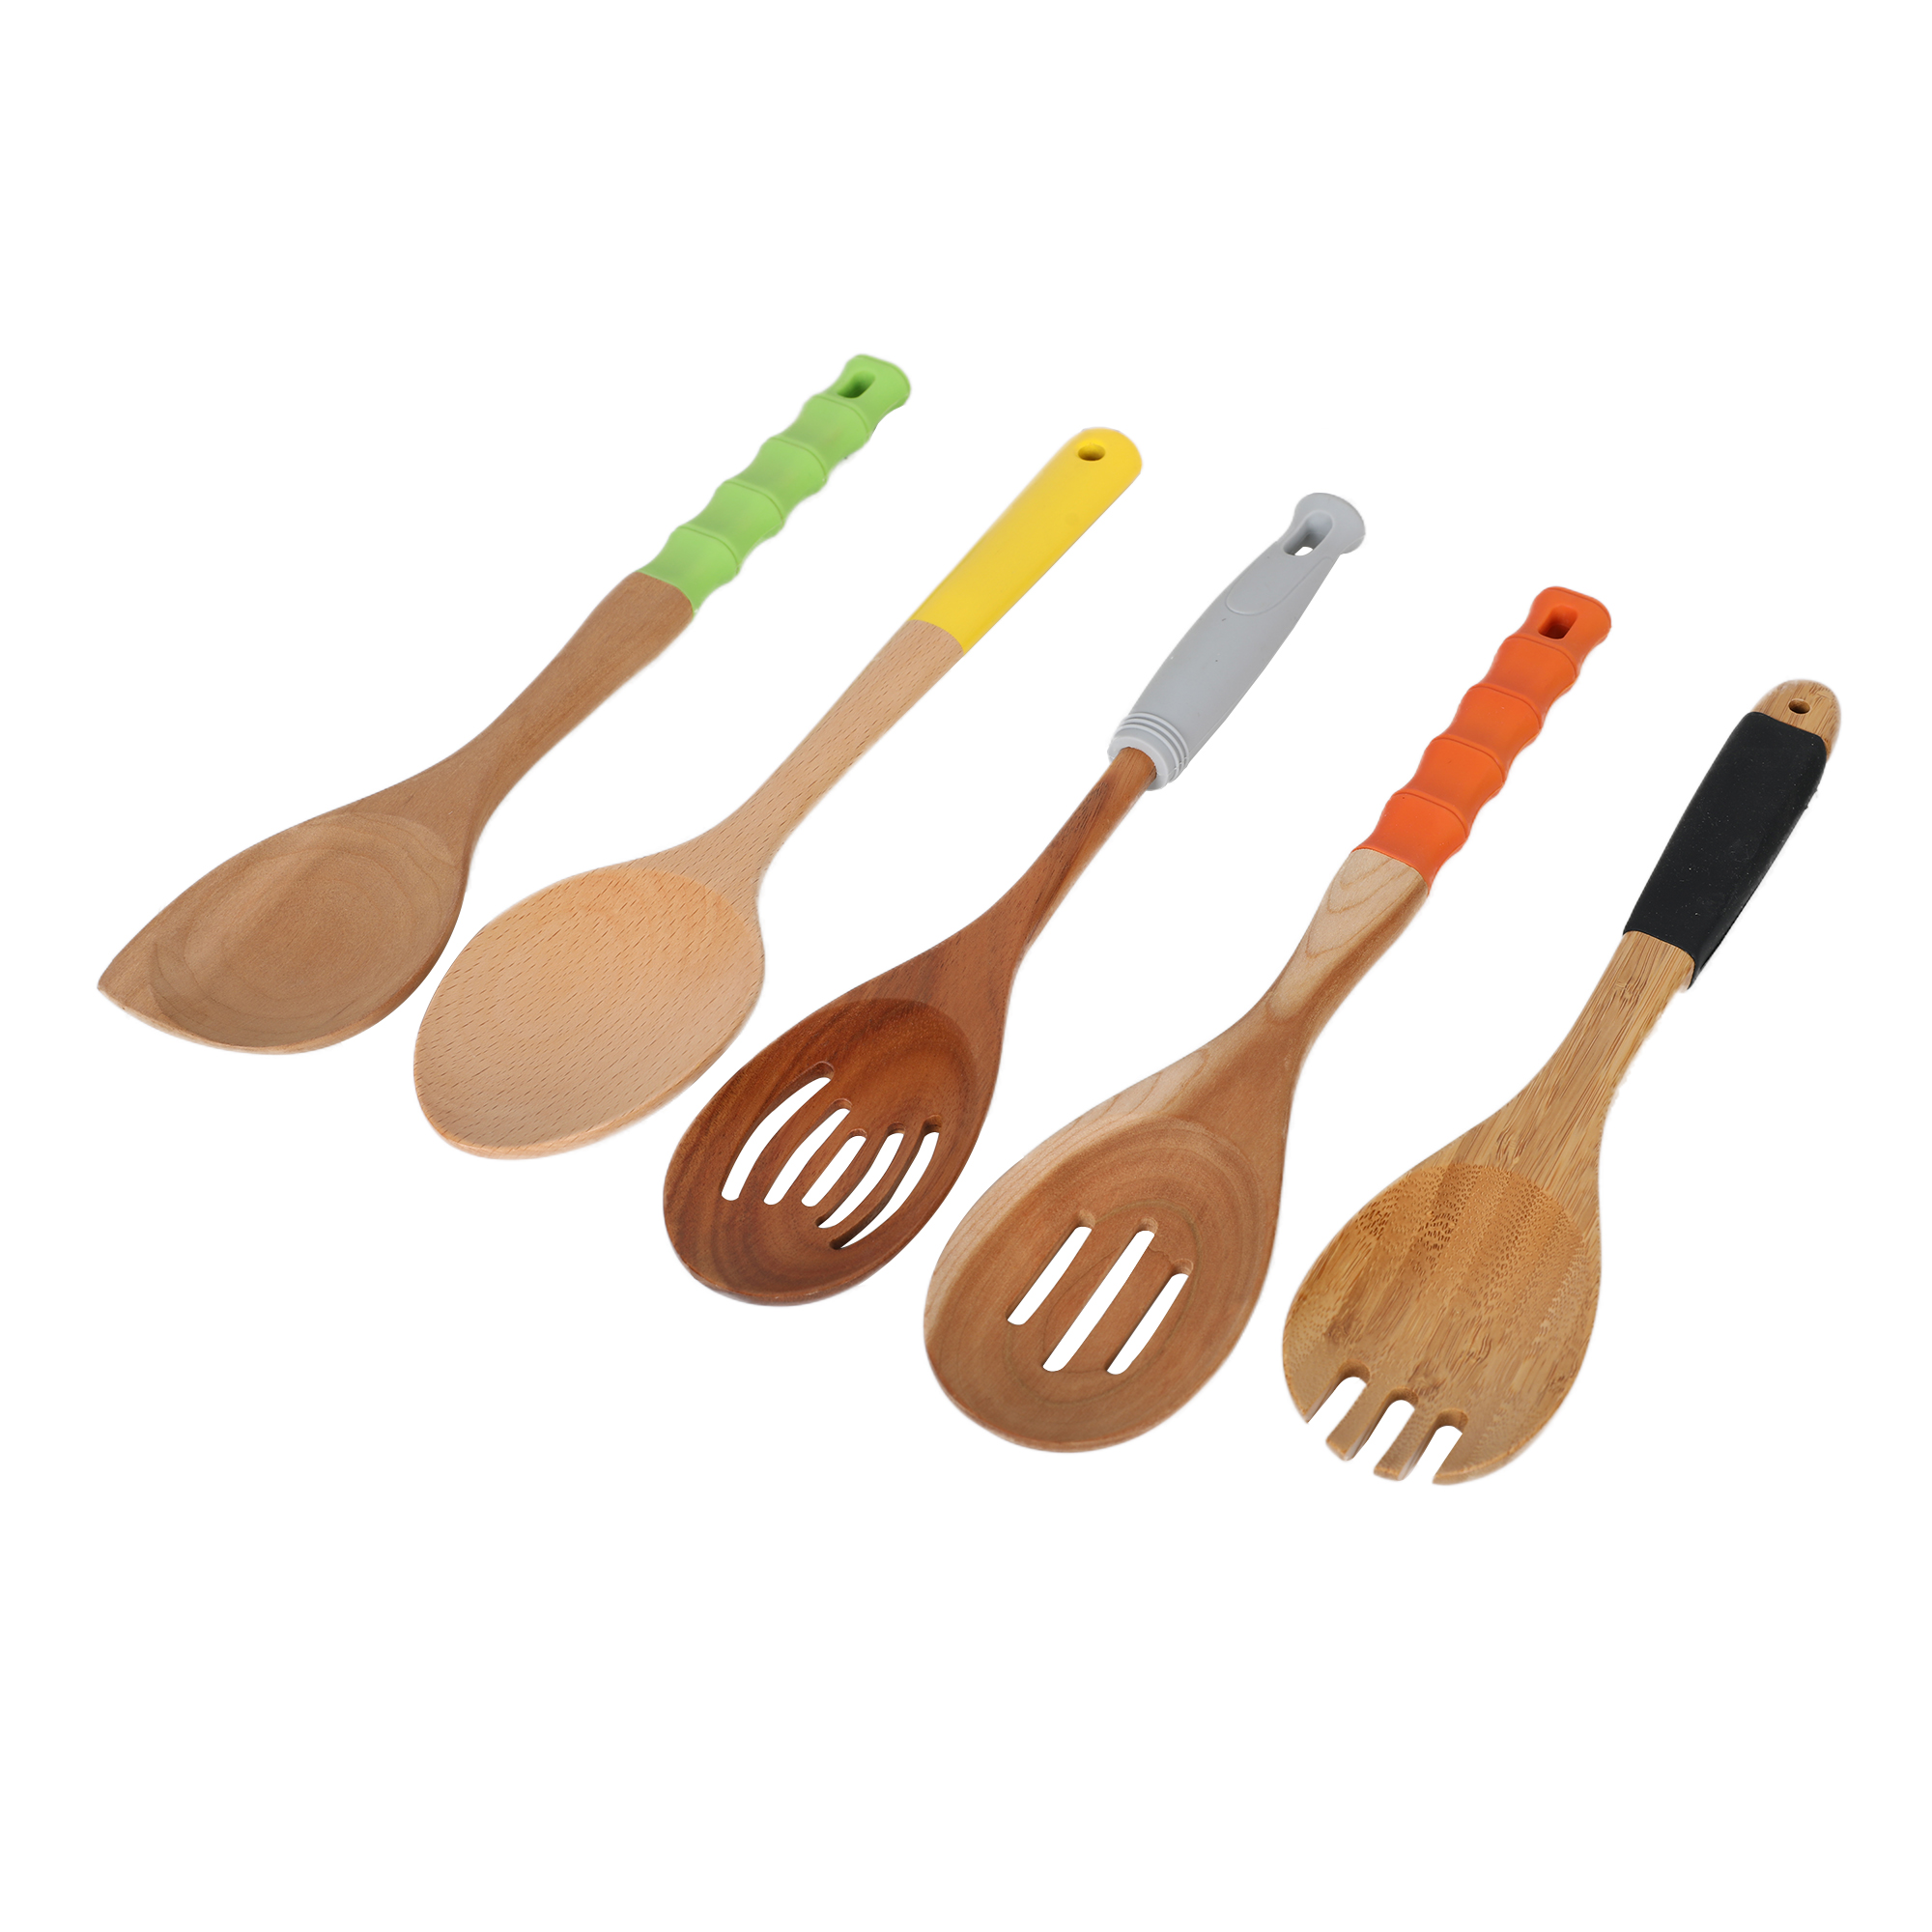 Hot Sale Beech Wood Cooking Kitchen Utensils Set with Painting Silicon Handle